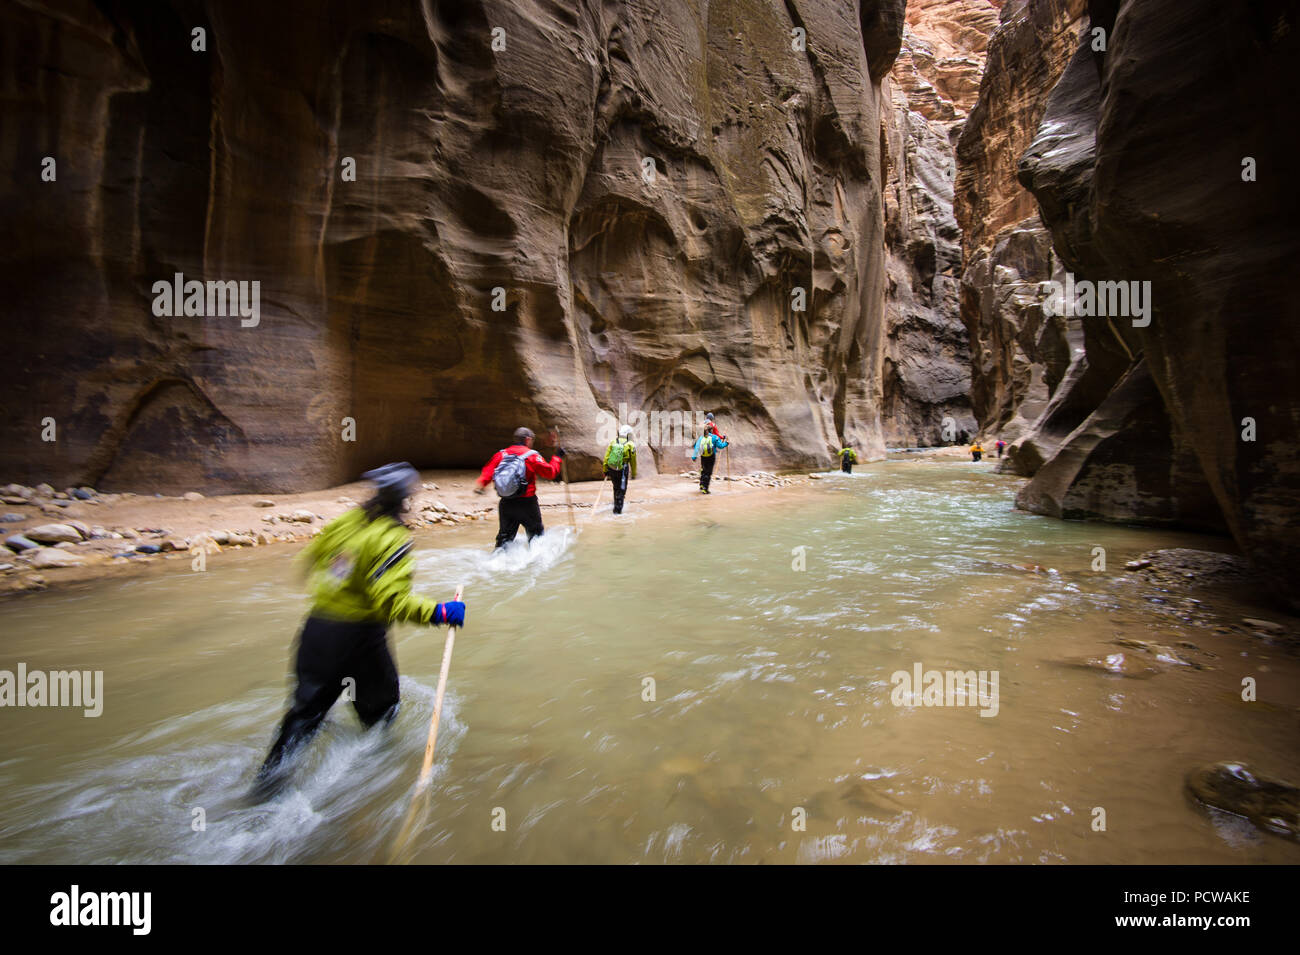 Hiking Zion National Park's famous slot canyon, The Narrows, in winter requires a dry suit and warm clothes. It's much less crowded than in the summer. Stock Photo